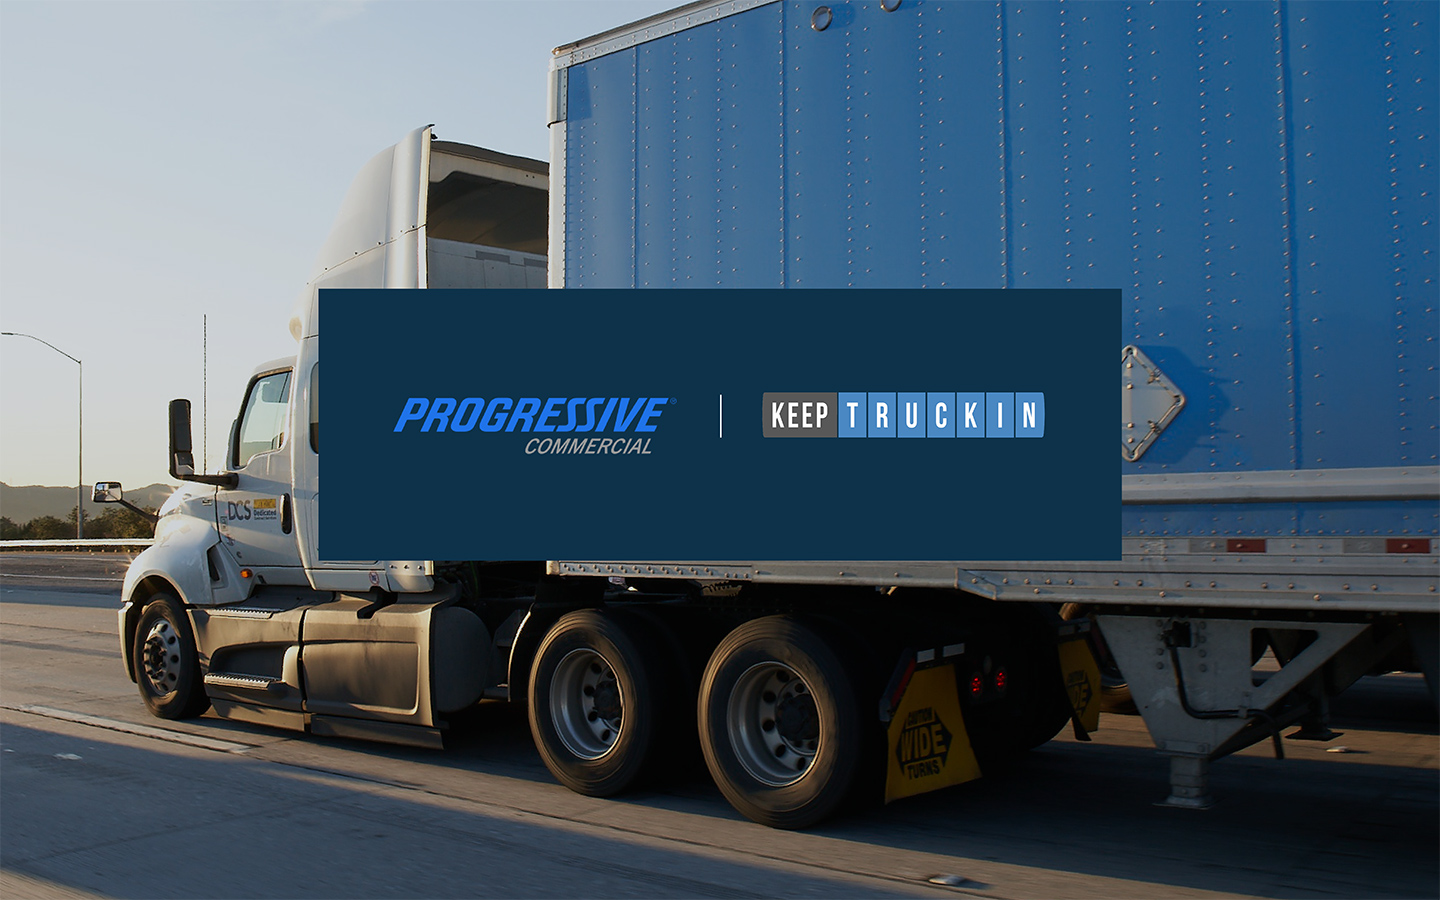 Progressive and KeepTruckin: Insurance credits for mutual customers during COVID-19